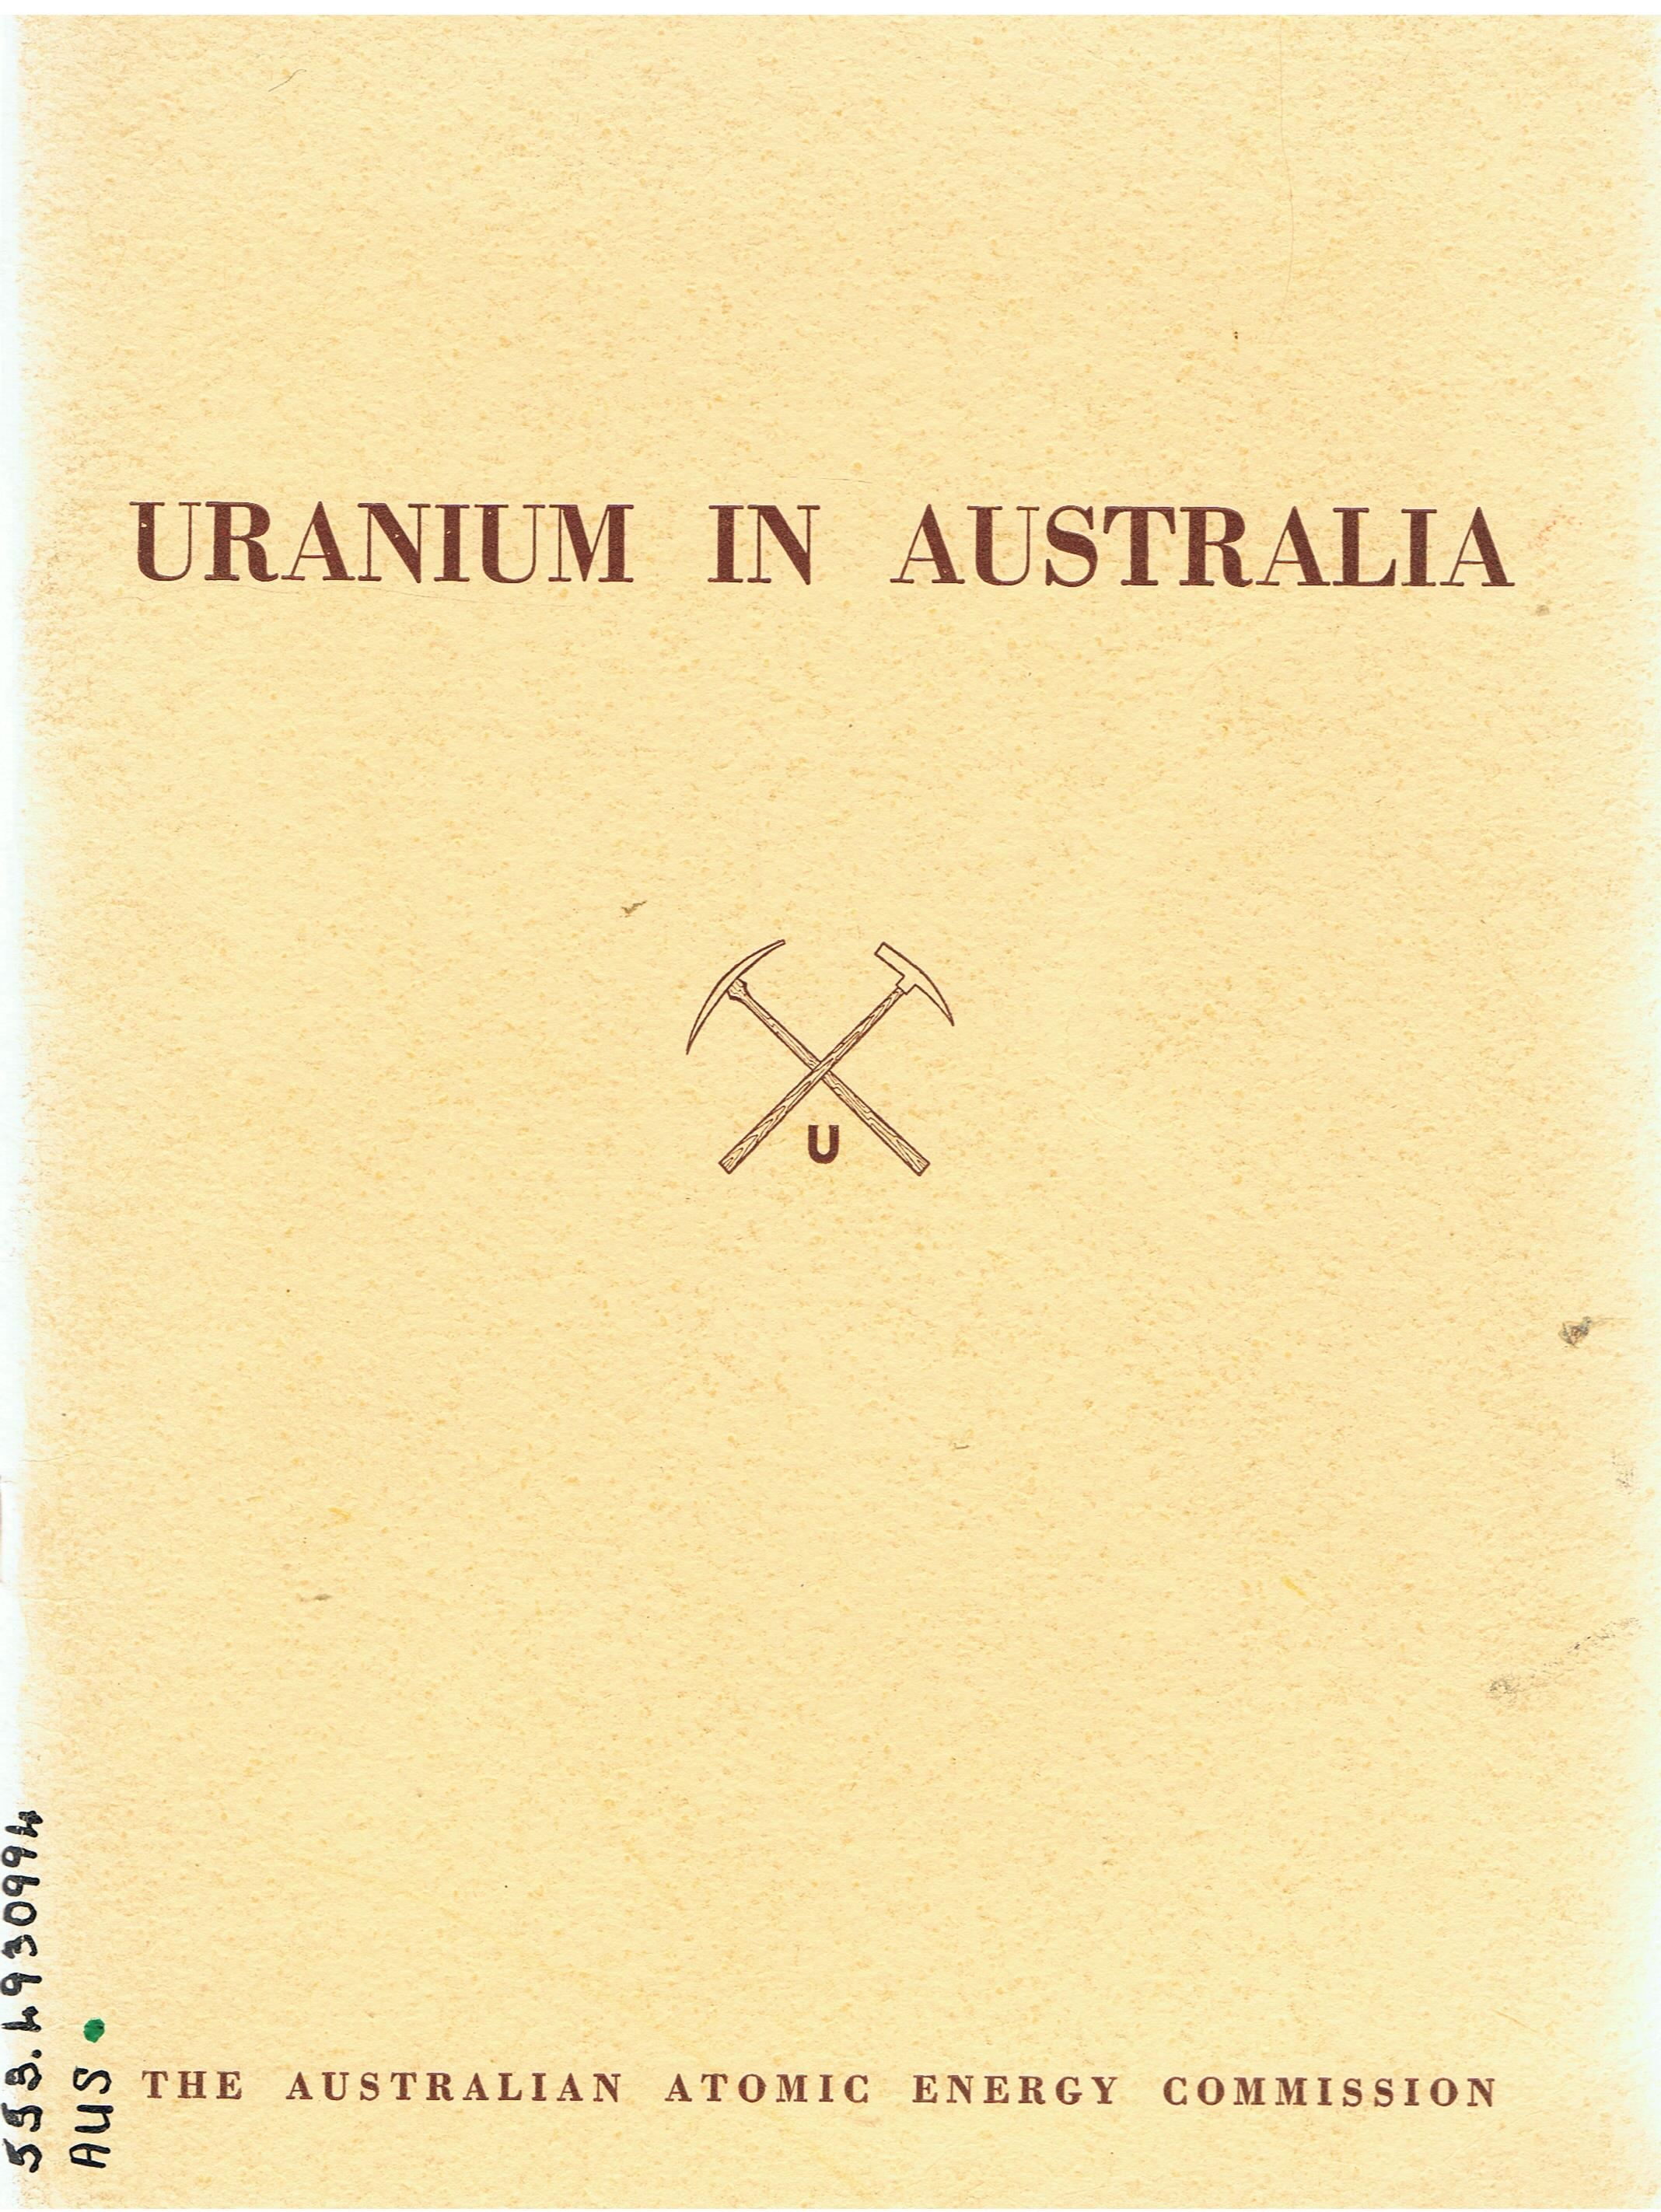 Image for Uranium in Australia. A Collection of Articles on the History and Development of the Uranium Mining Industry in Australia.